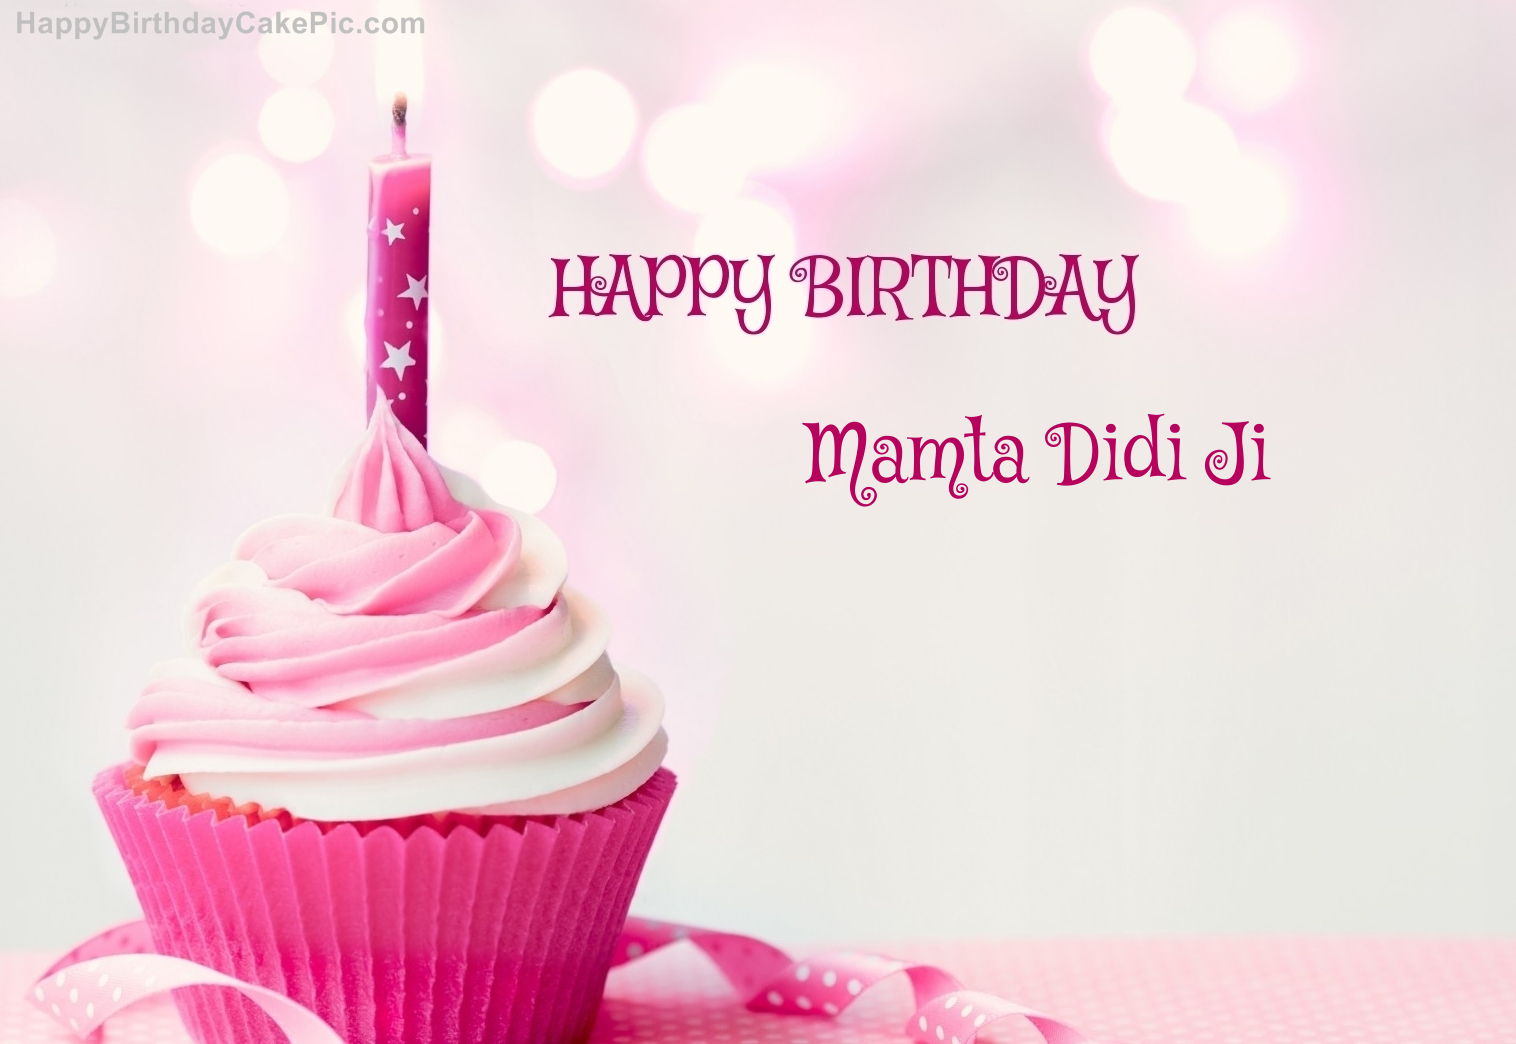 Birthday Cake Pic With Name Mamta : Happy Birthday Cupcake Candle Pink Cake For Mamta Didi Ji